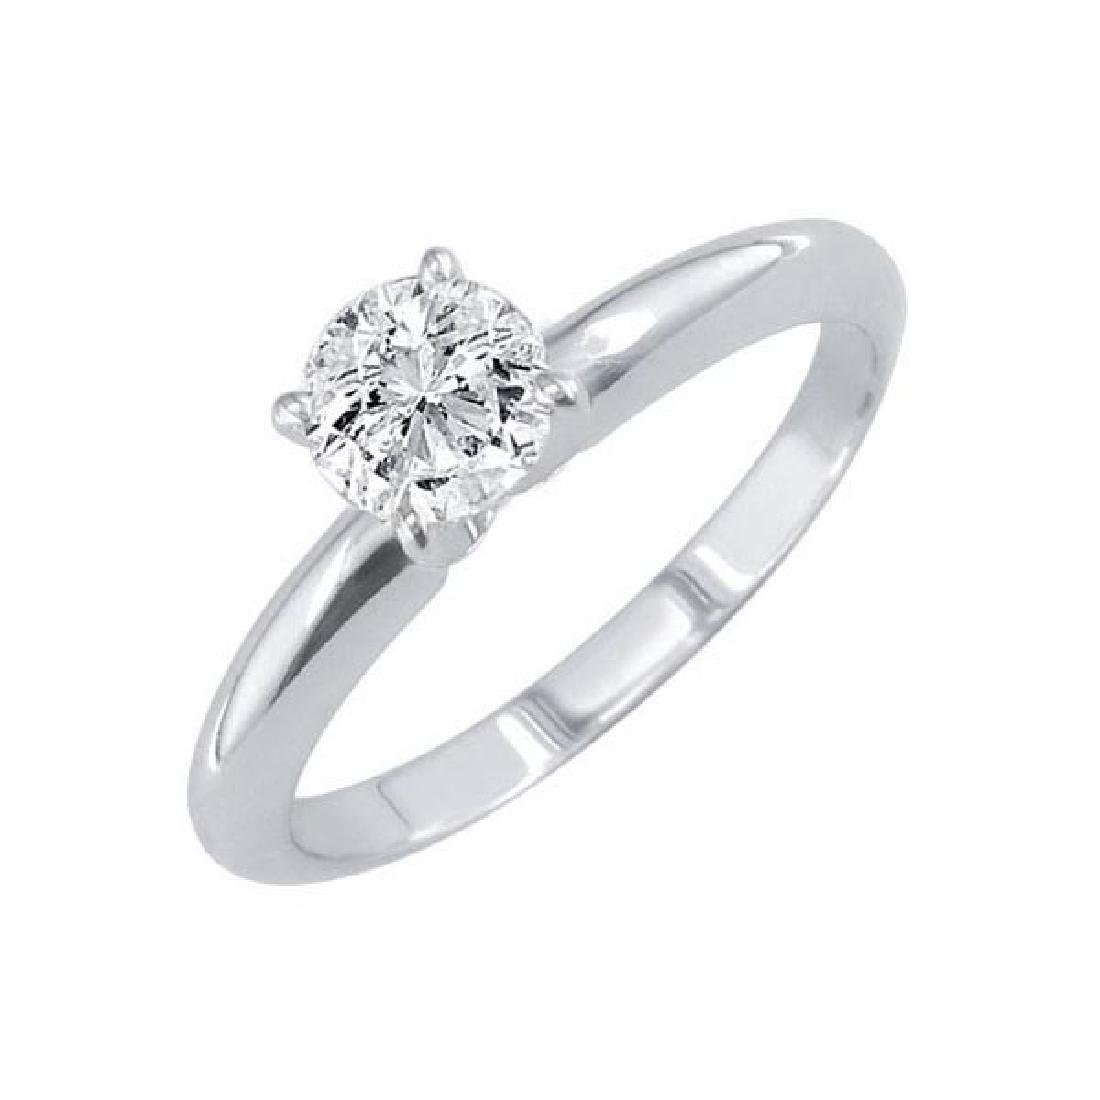 Certified 1.43 CTW Round Diamond Solitaire 14k Ring F/S